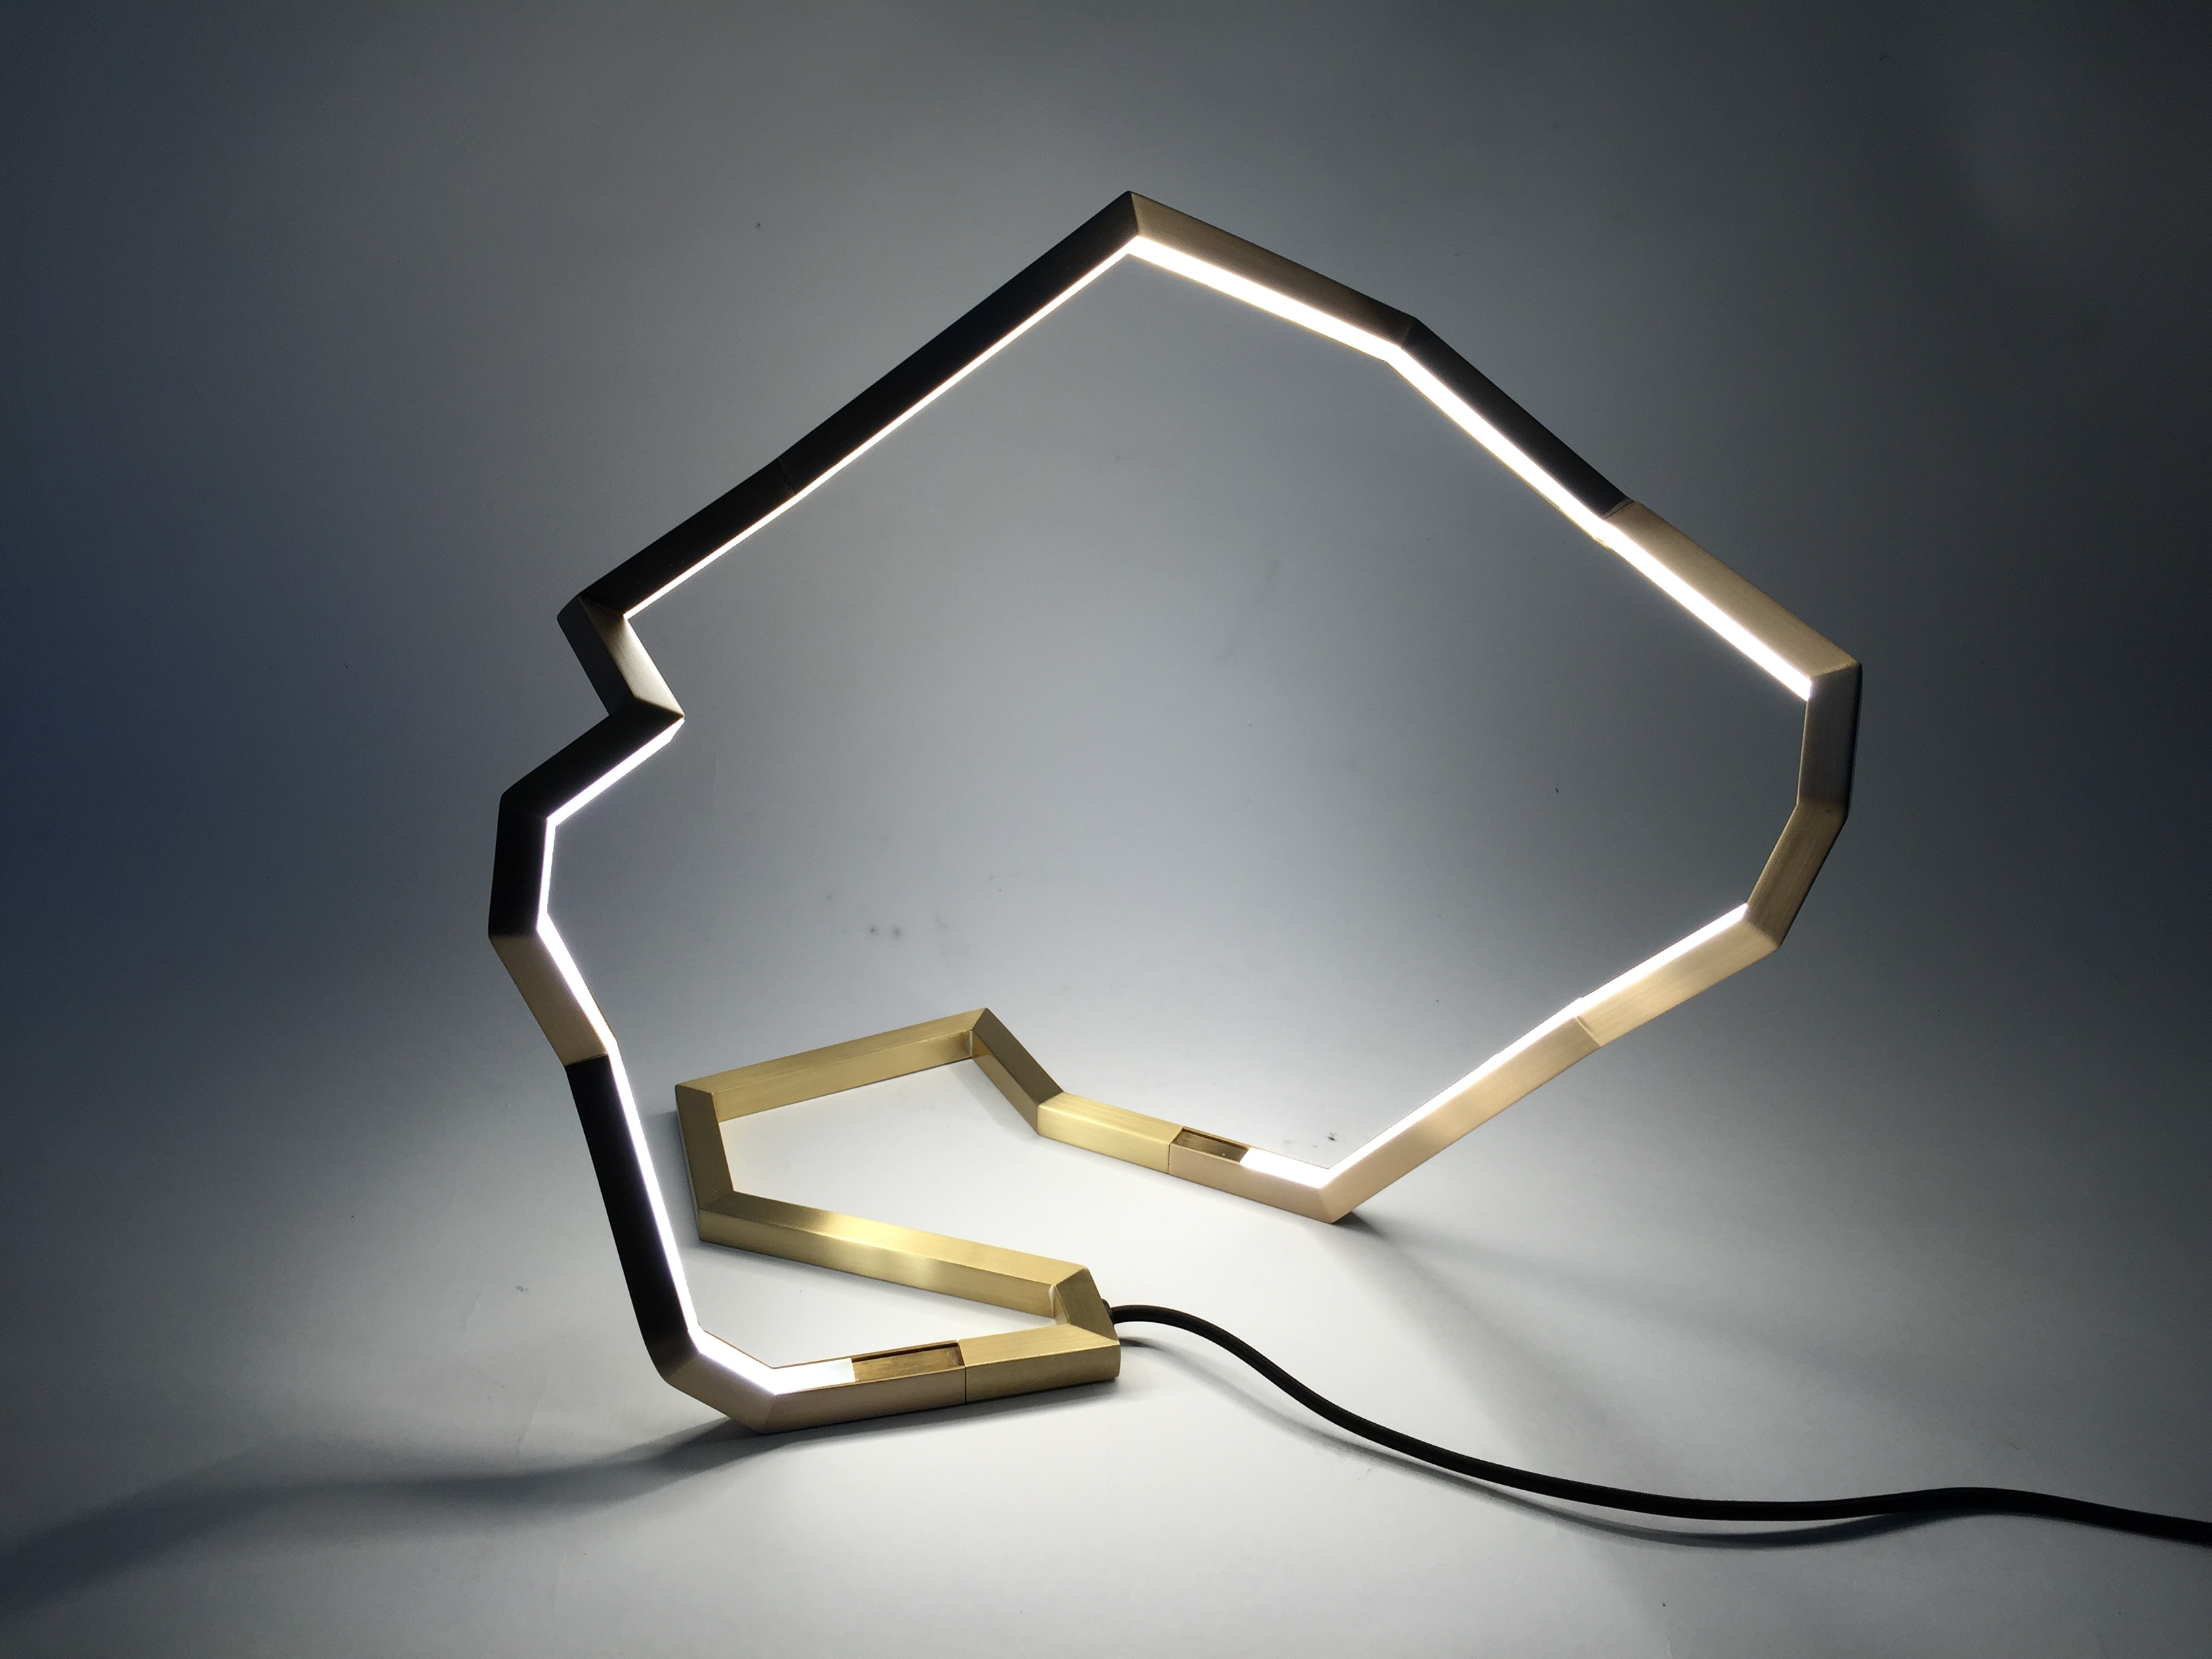 Lampe roches 2